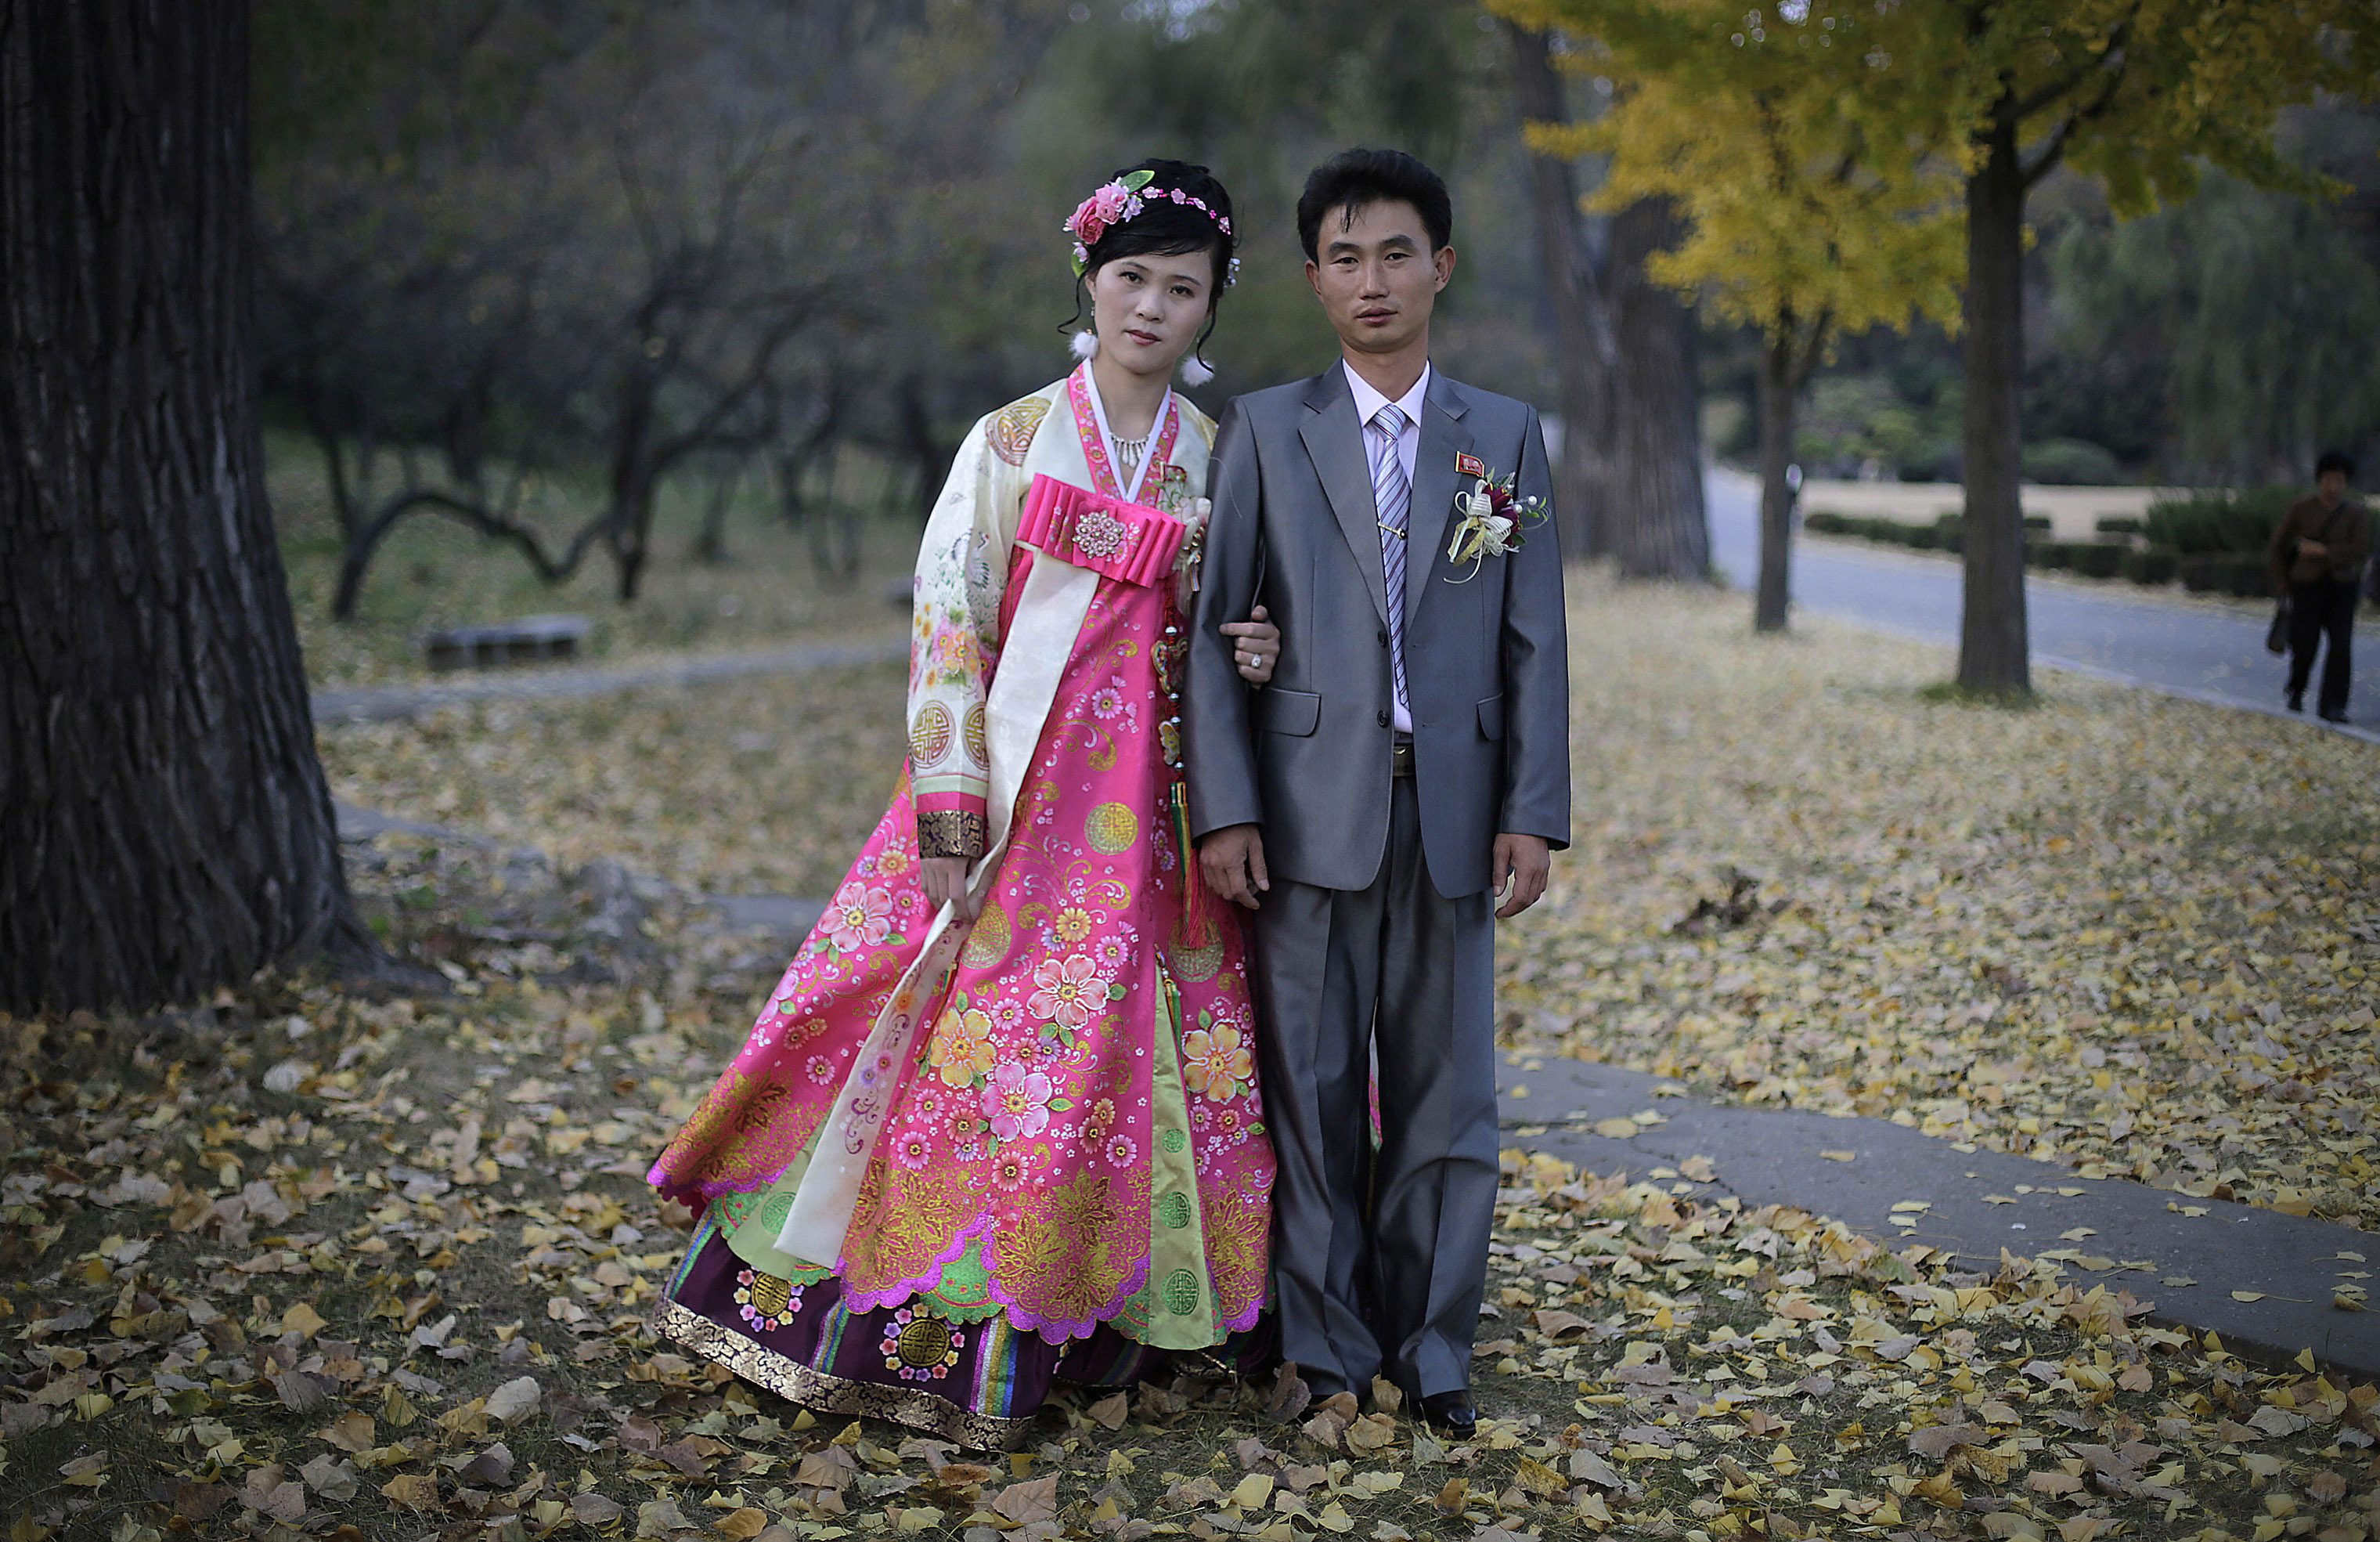 A bride and groom pose for a photograph at the hill where they went to take wedding pictures in Pyongyang on Oct. 25, 2014.